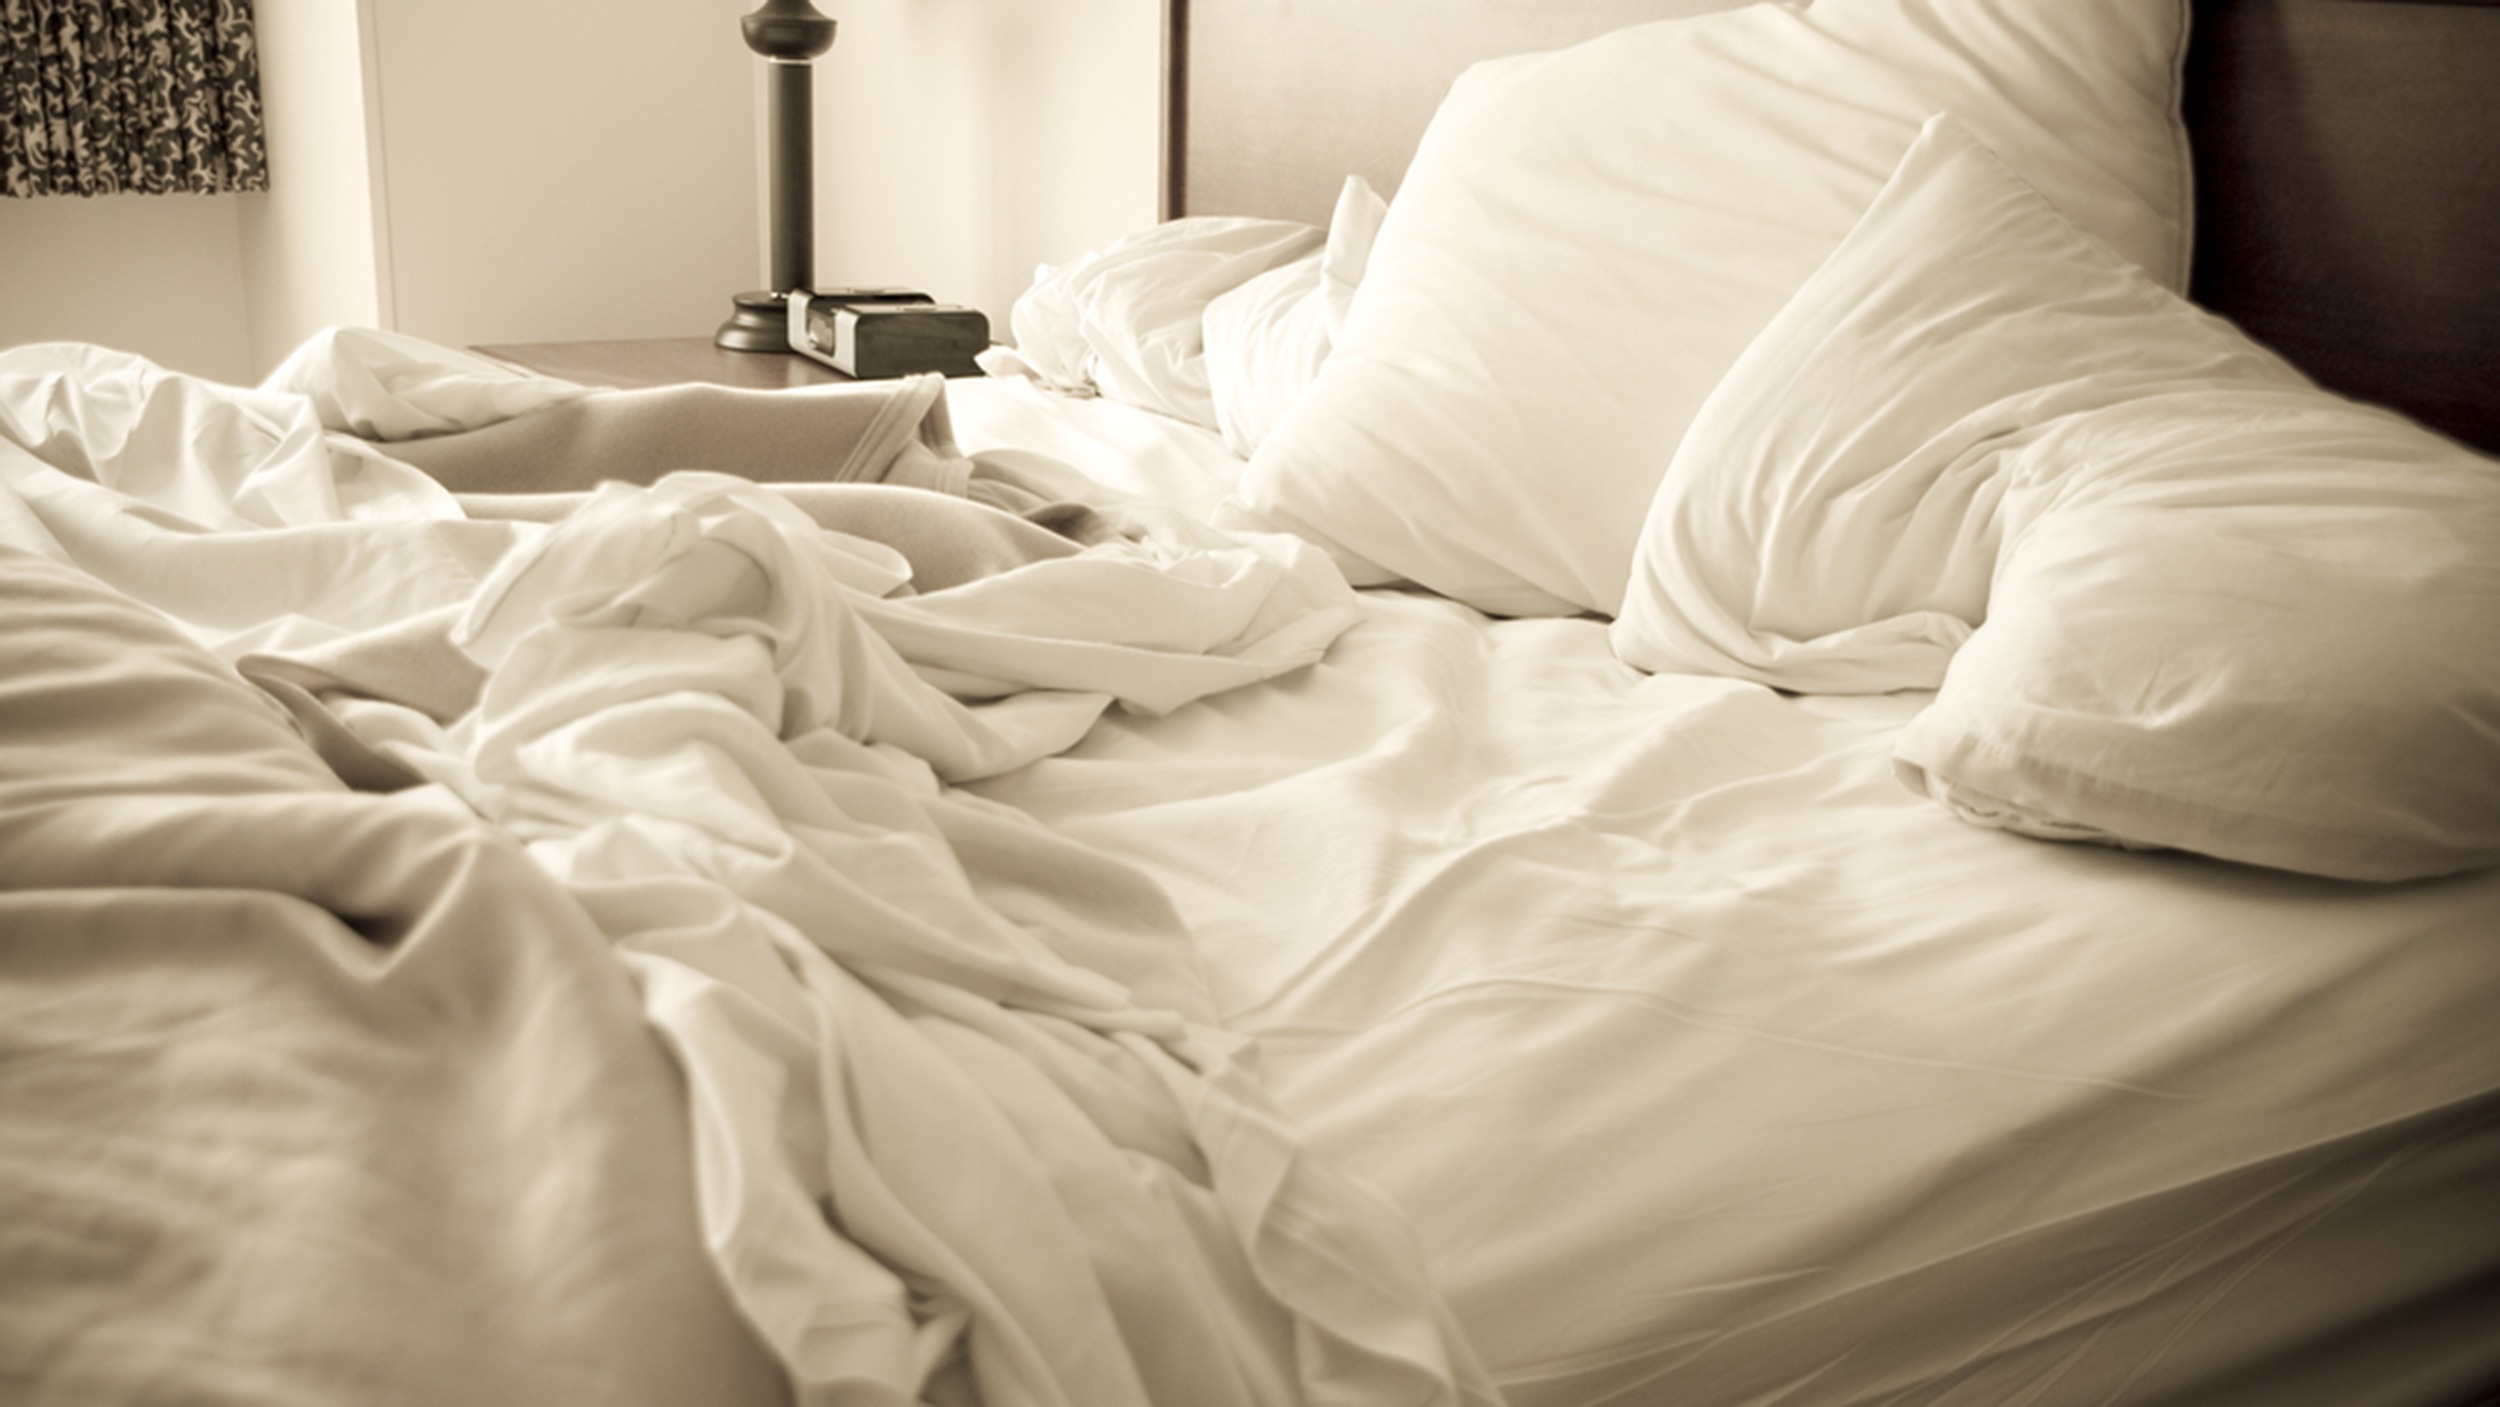 An unmade bed with white linens and a lamp in the corner.; Shutterstock ID 197136716; PO: MC for TODAY